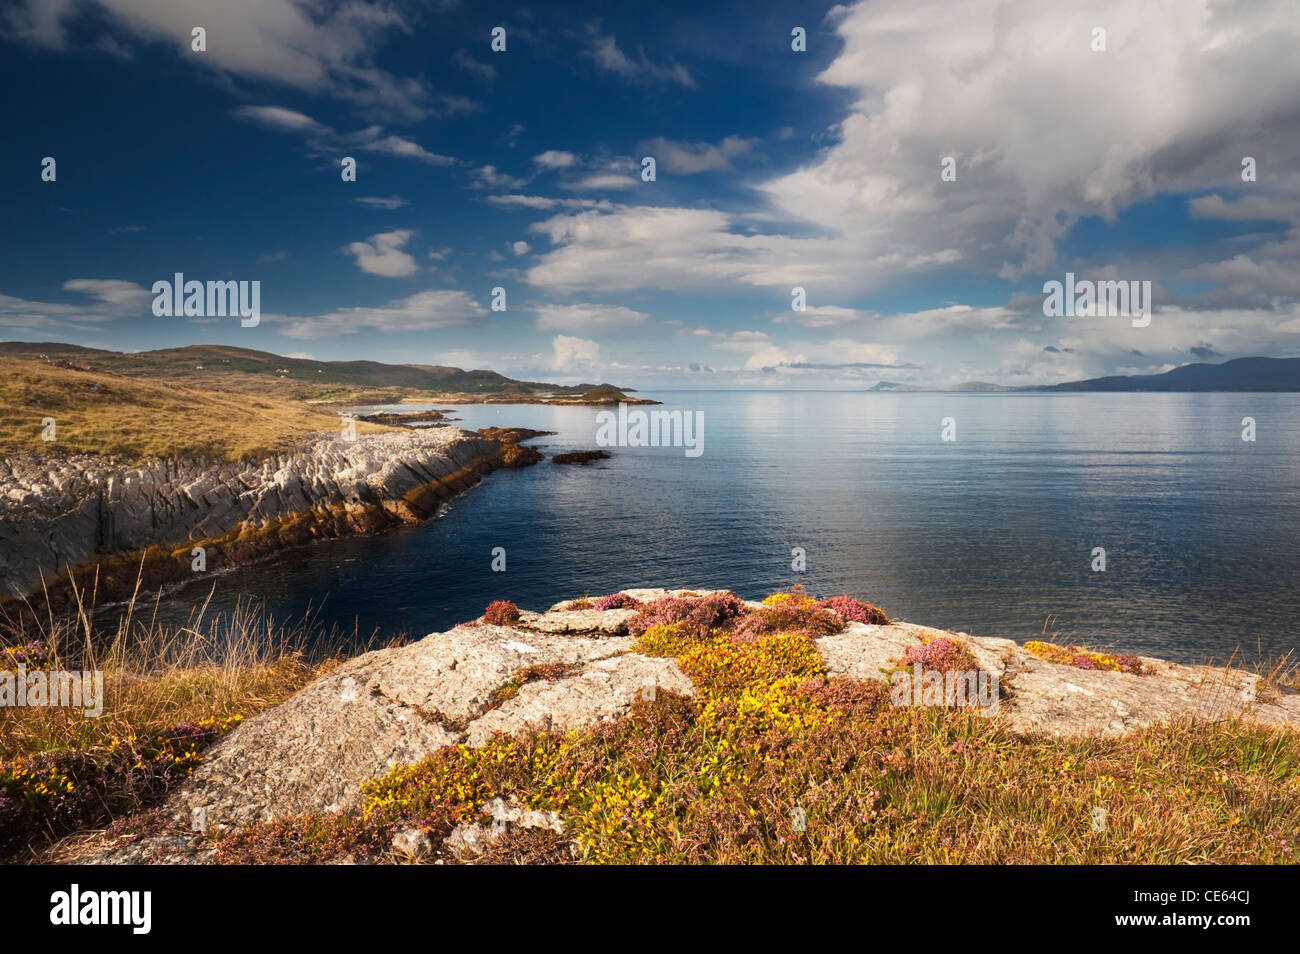 View westwards along Kenmare Bay towards the Atlantic Ocean, from Kilcatherine, Beara, County Cork, Ireland - Stock Image